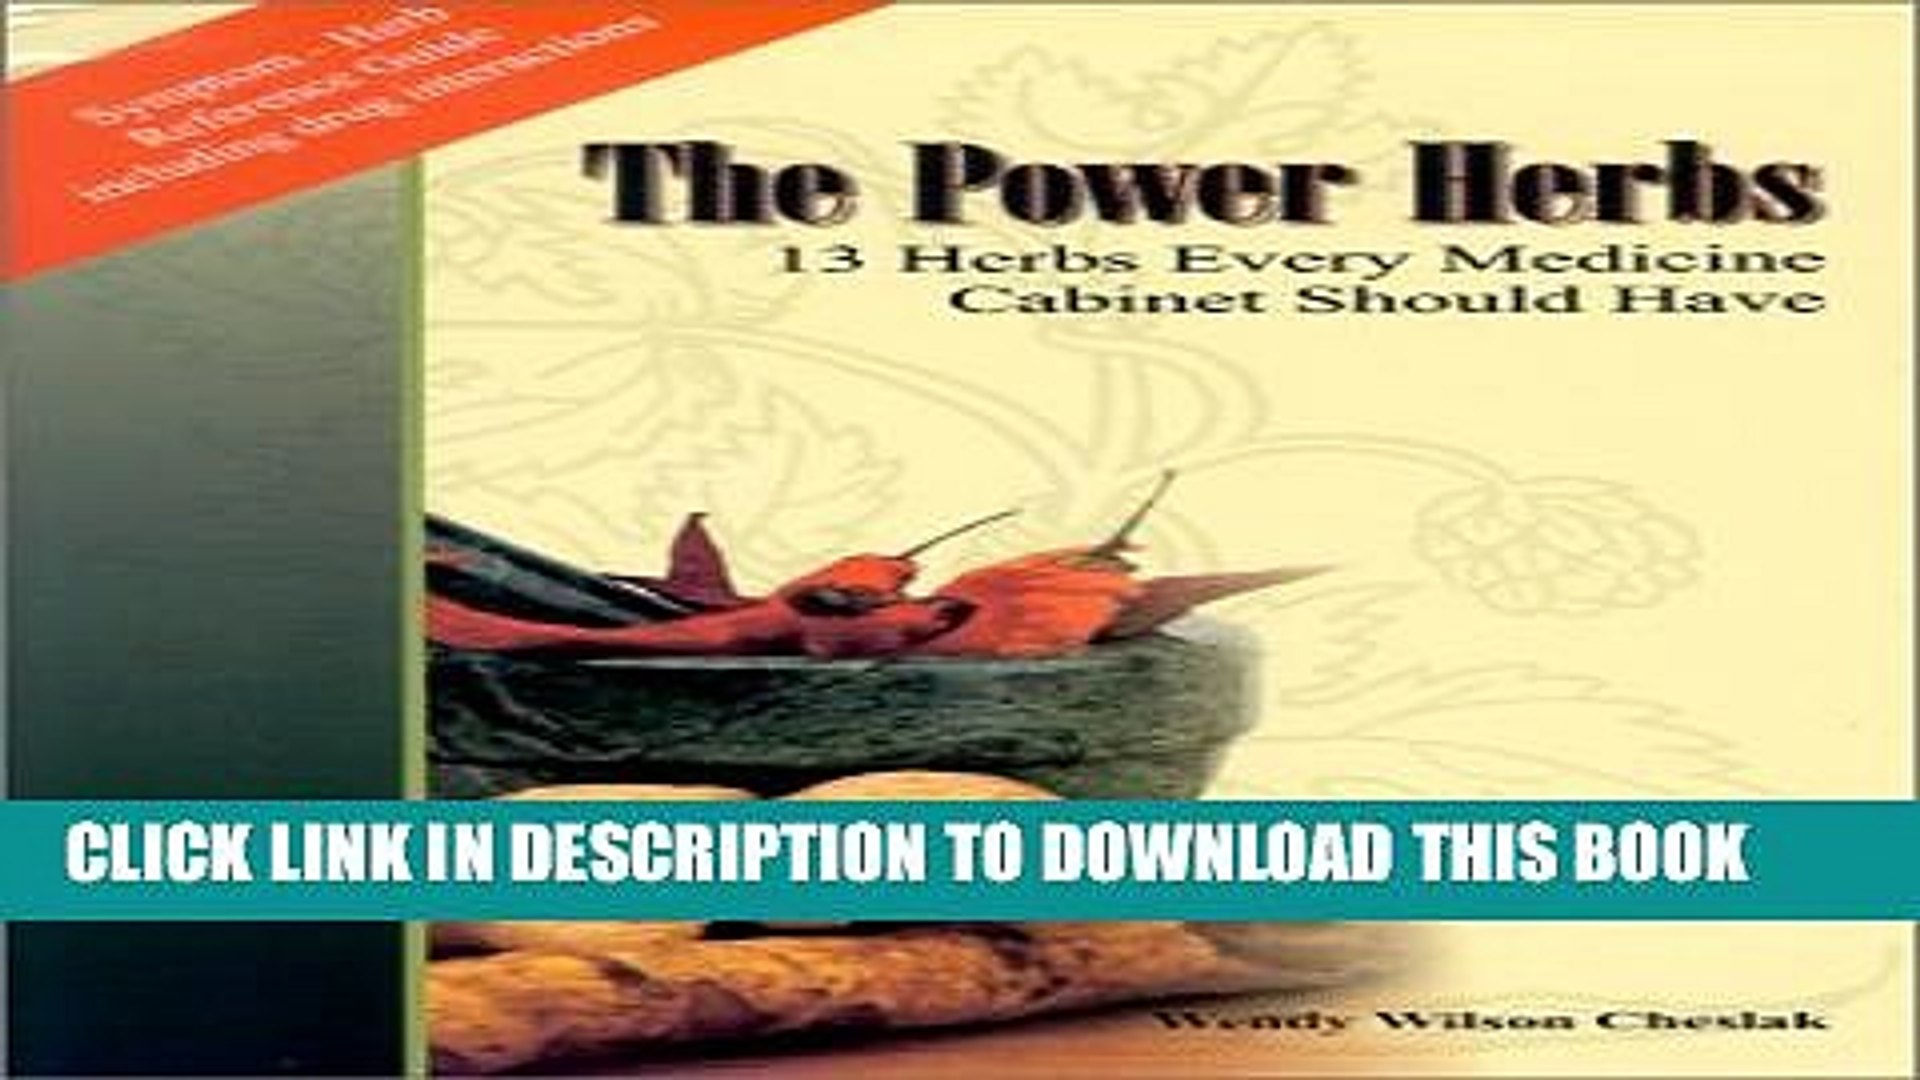 Pdf The Power Herbs 13 Herbs Every Medicine Cabinet Should Have Full Colection Video Dailymotion